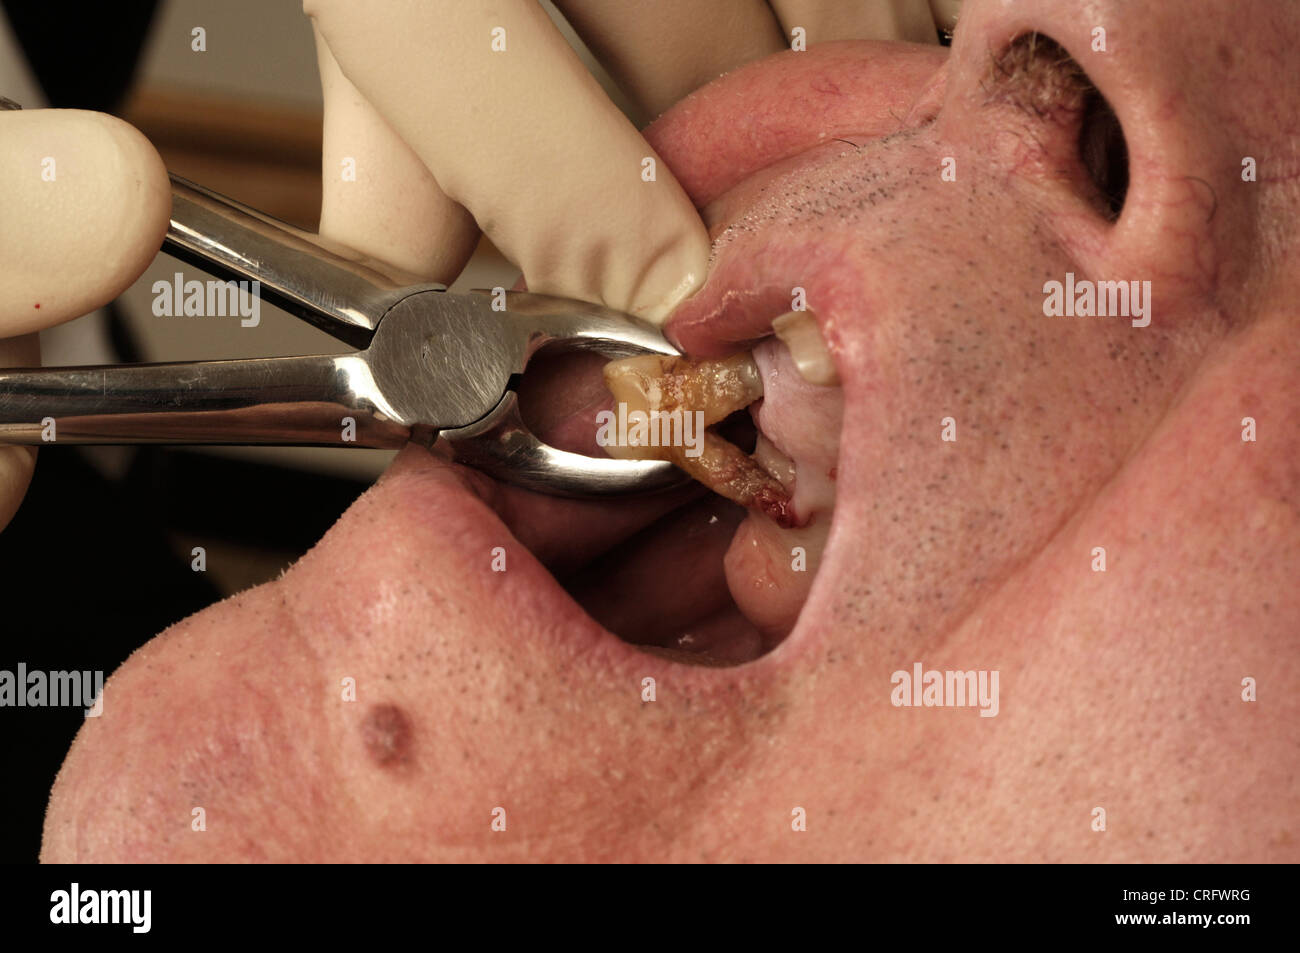 Close up of the removal of a decaying tooth. - Stock Image